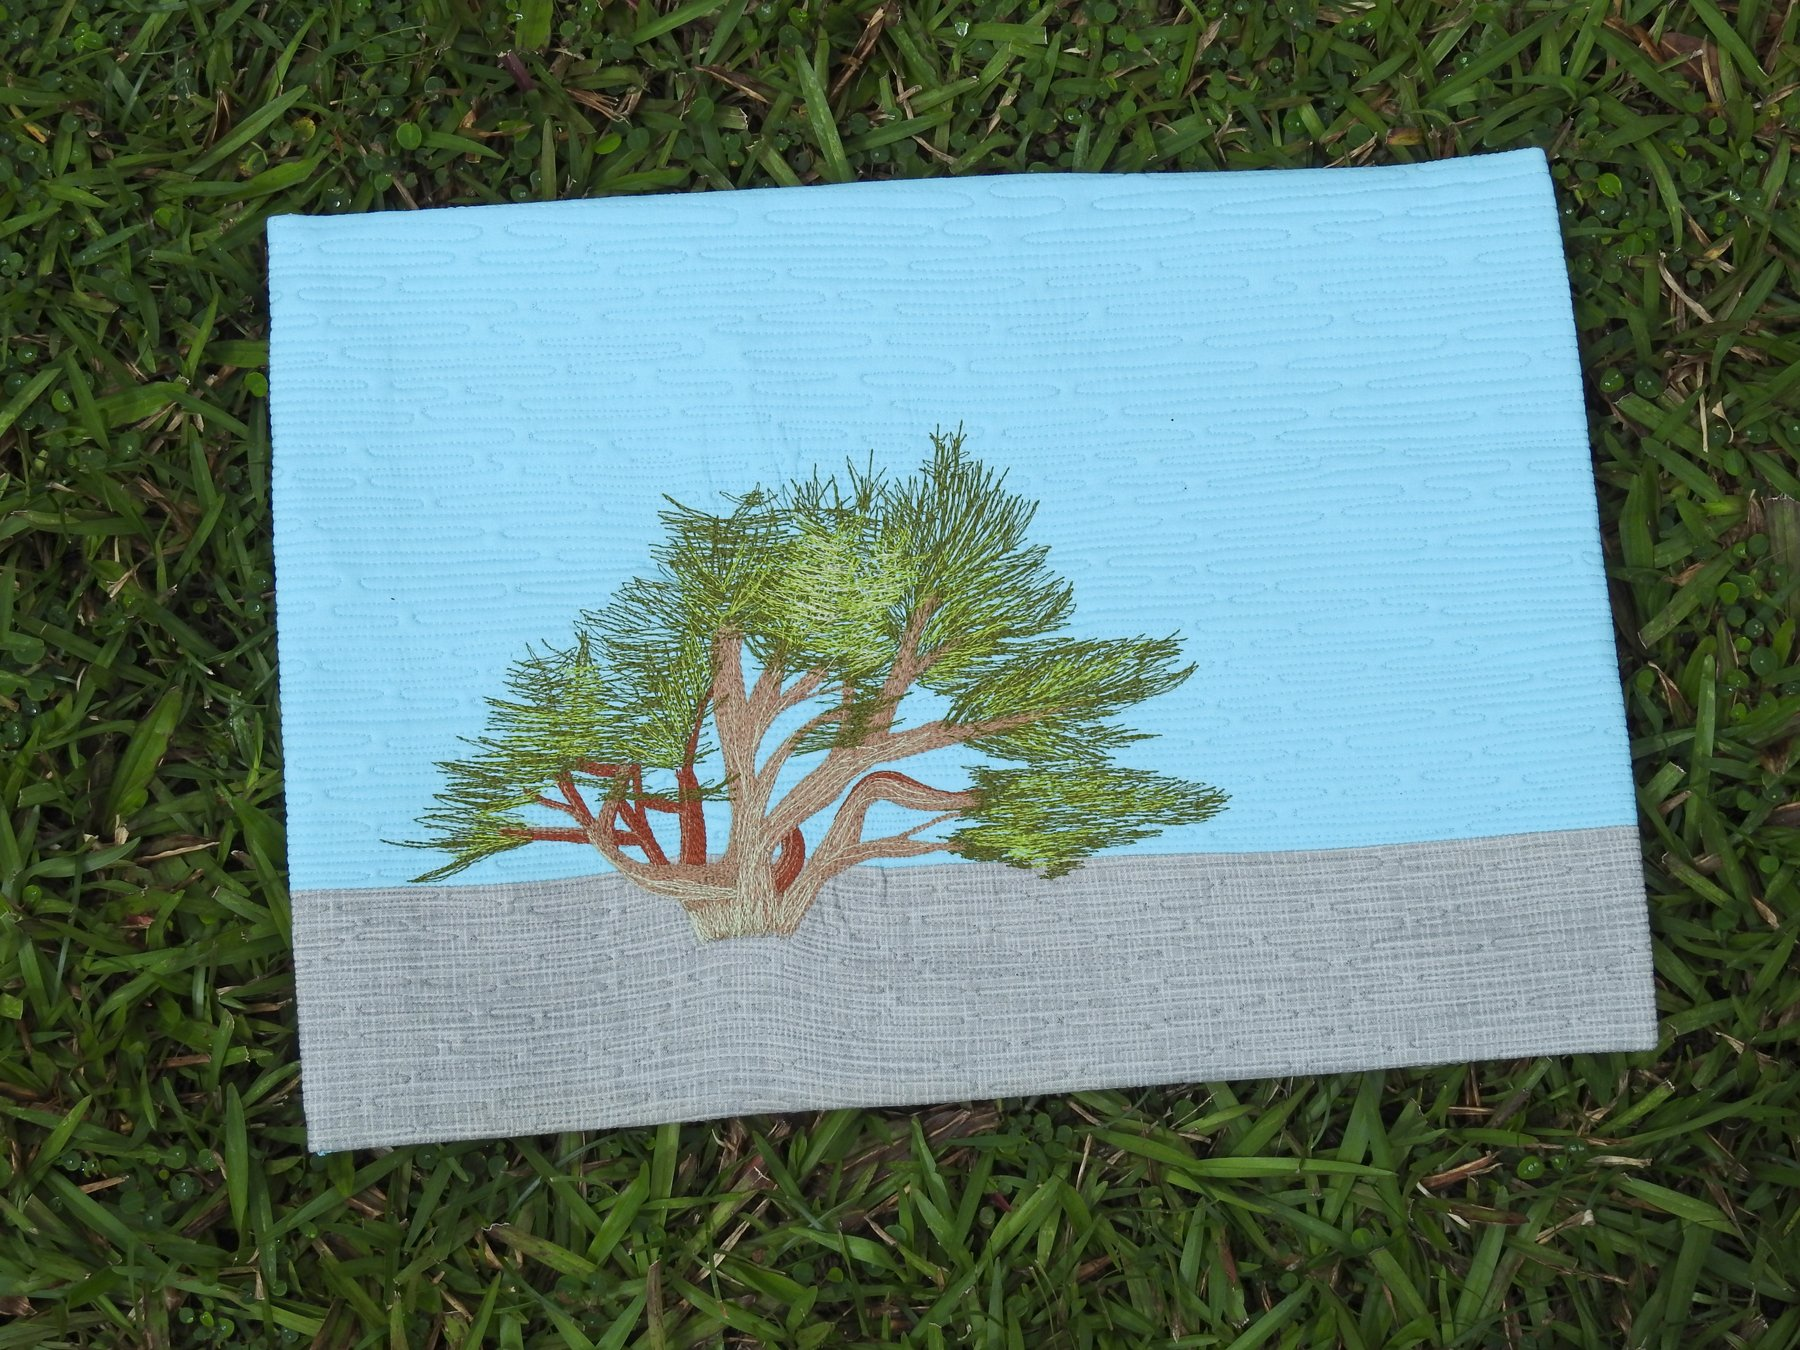 Pacific Grove Tree - Thread Painting Workshop Sample